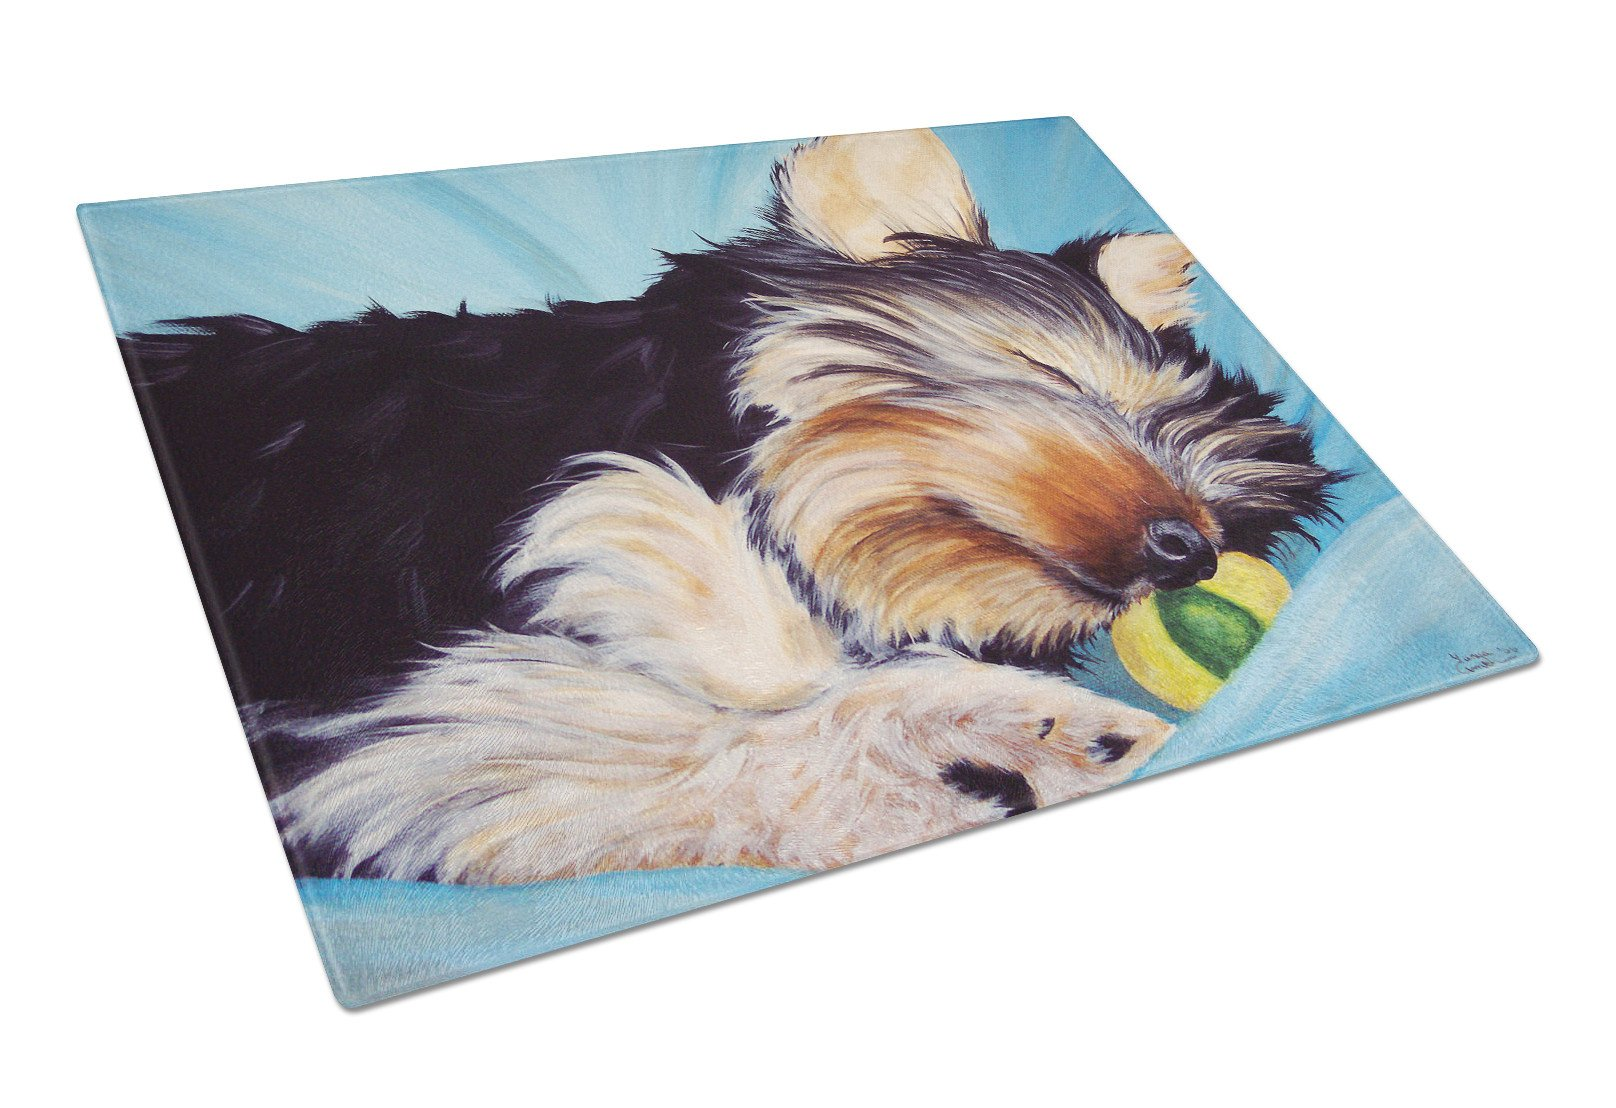 Naptime Yorkie Yorkshire Terrier Glass Cutting Board Large AMB1075LCB by Caroline's Treasures